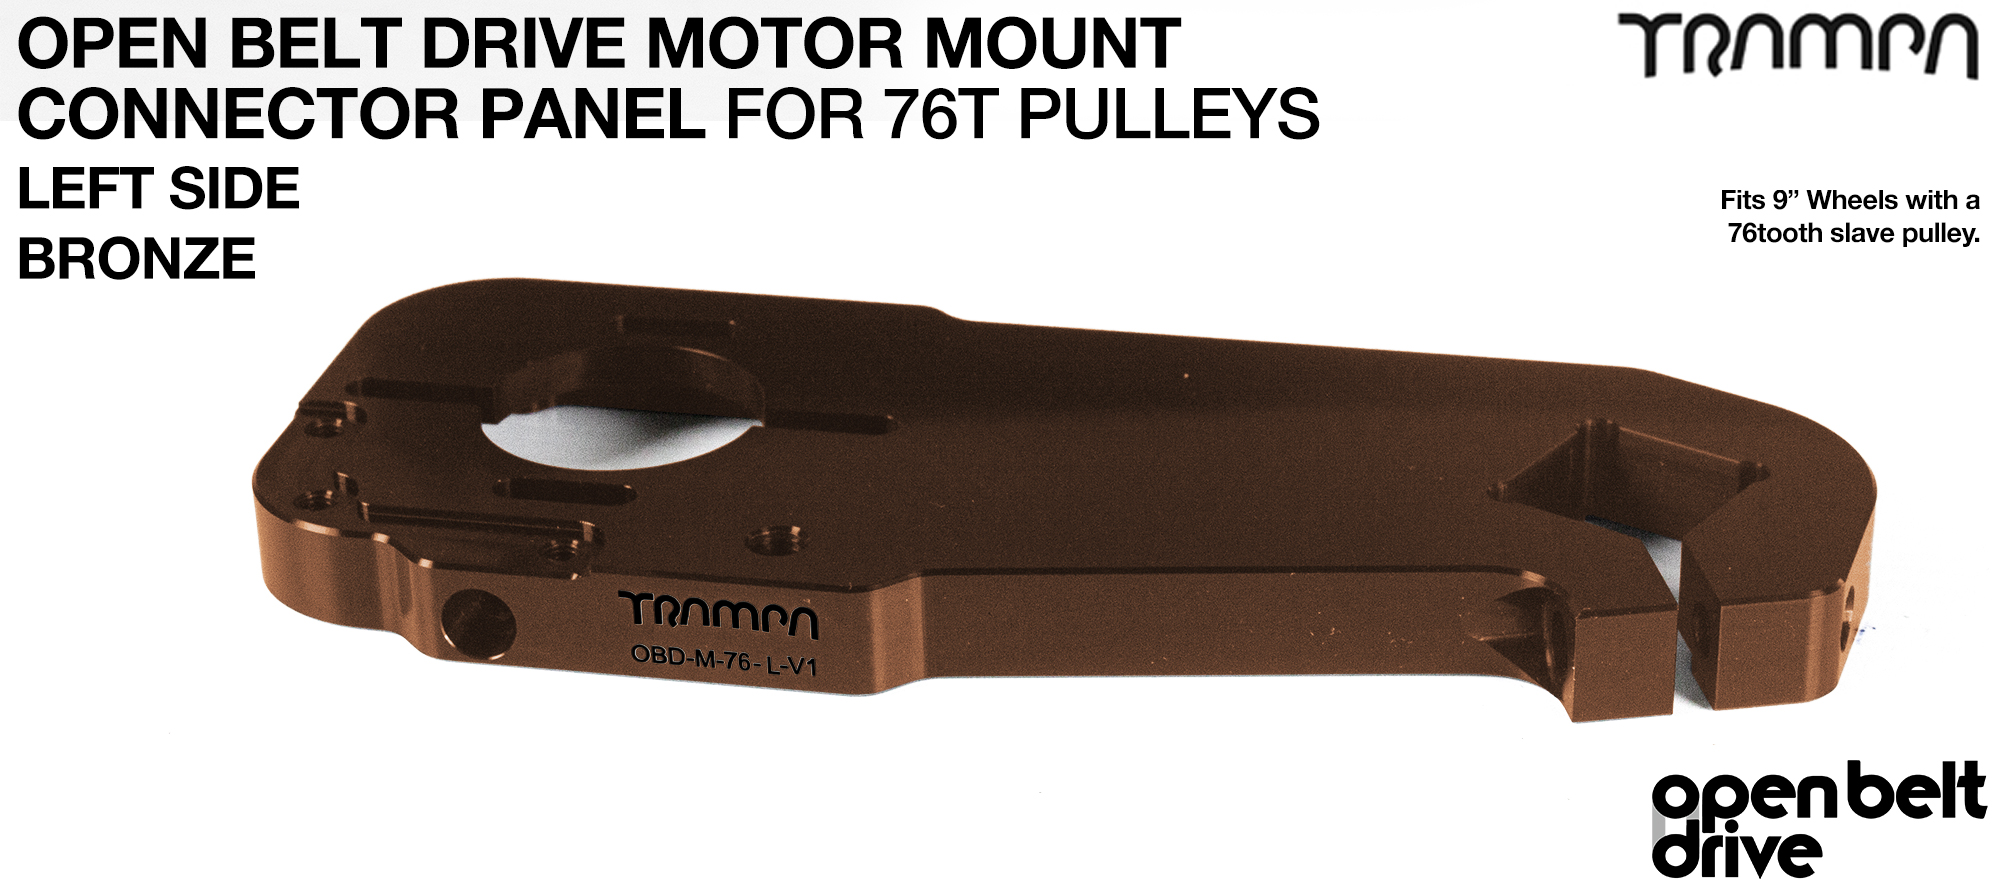 OBD Motor Mount Connector Panel for 76 tooth pulleys - REGULAR - BRONZE